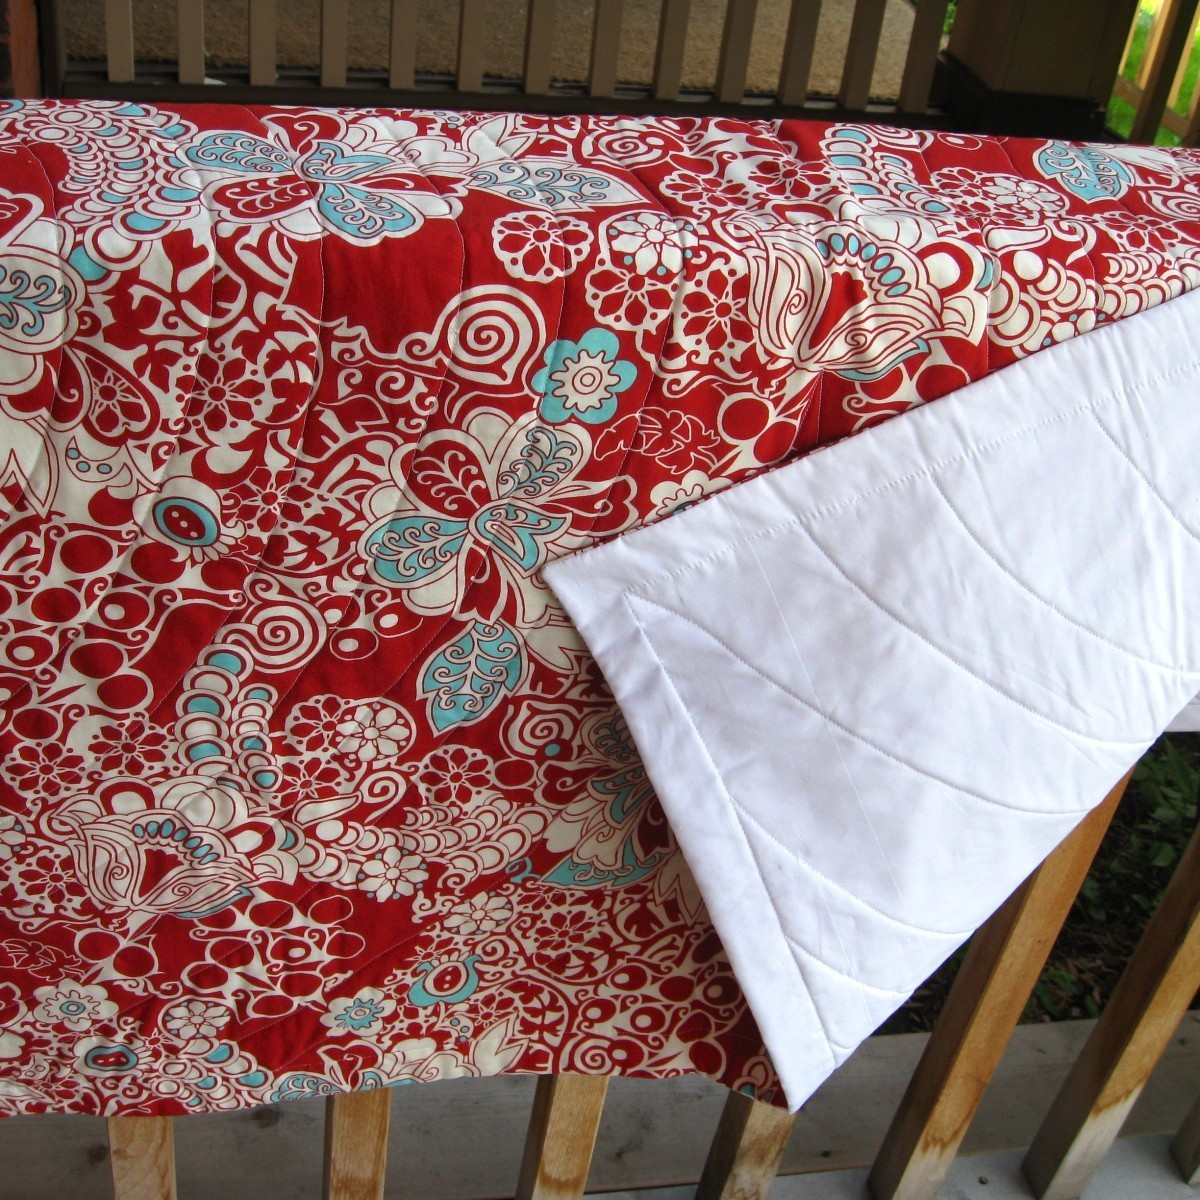 Custom Fabric Design for a quilt made by  S  ewnNatural  on etsy.